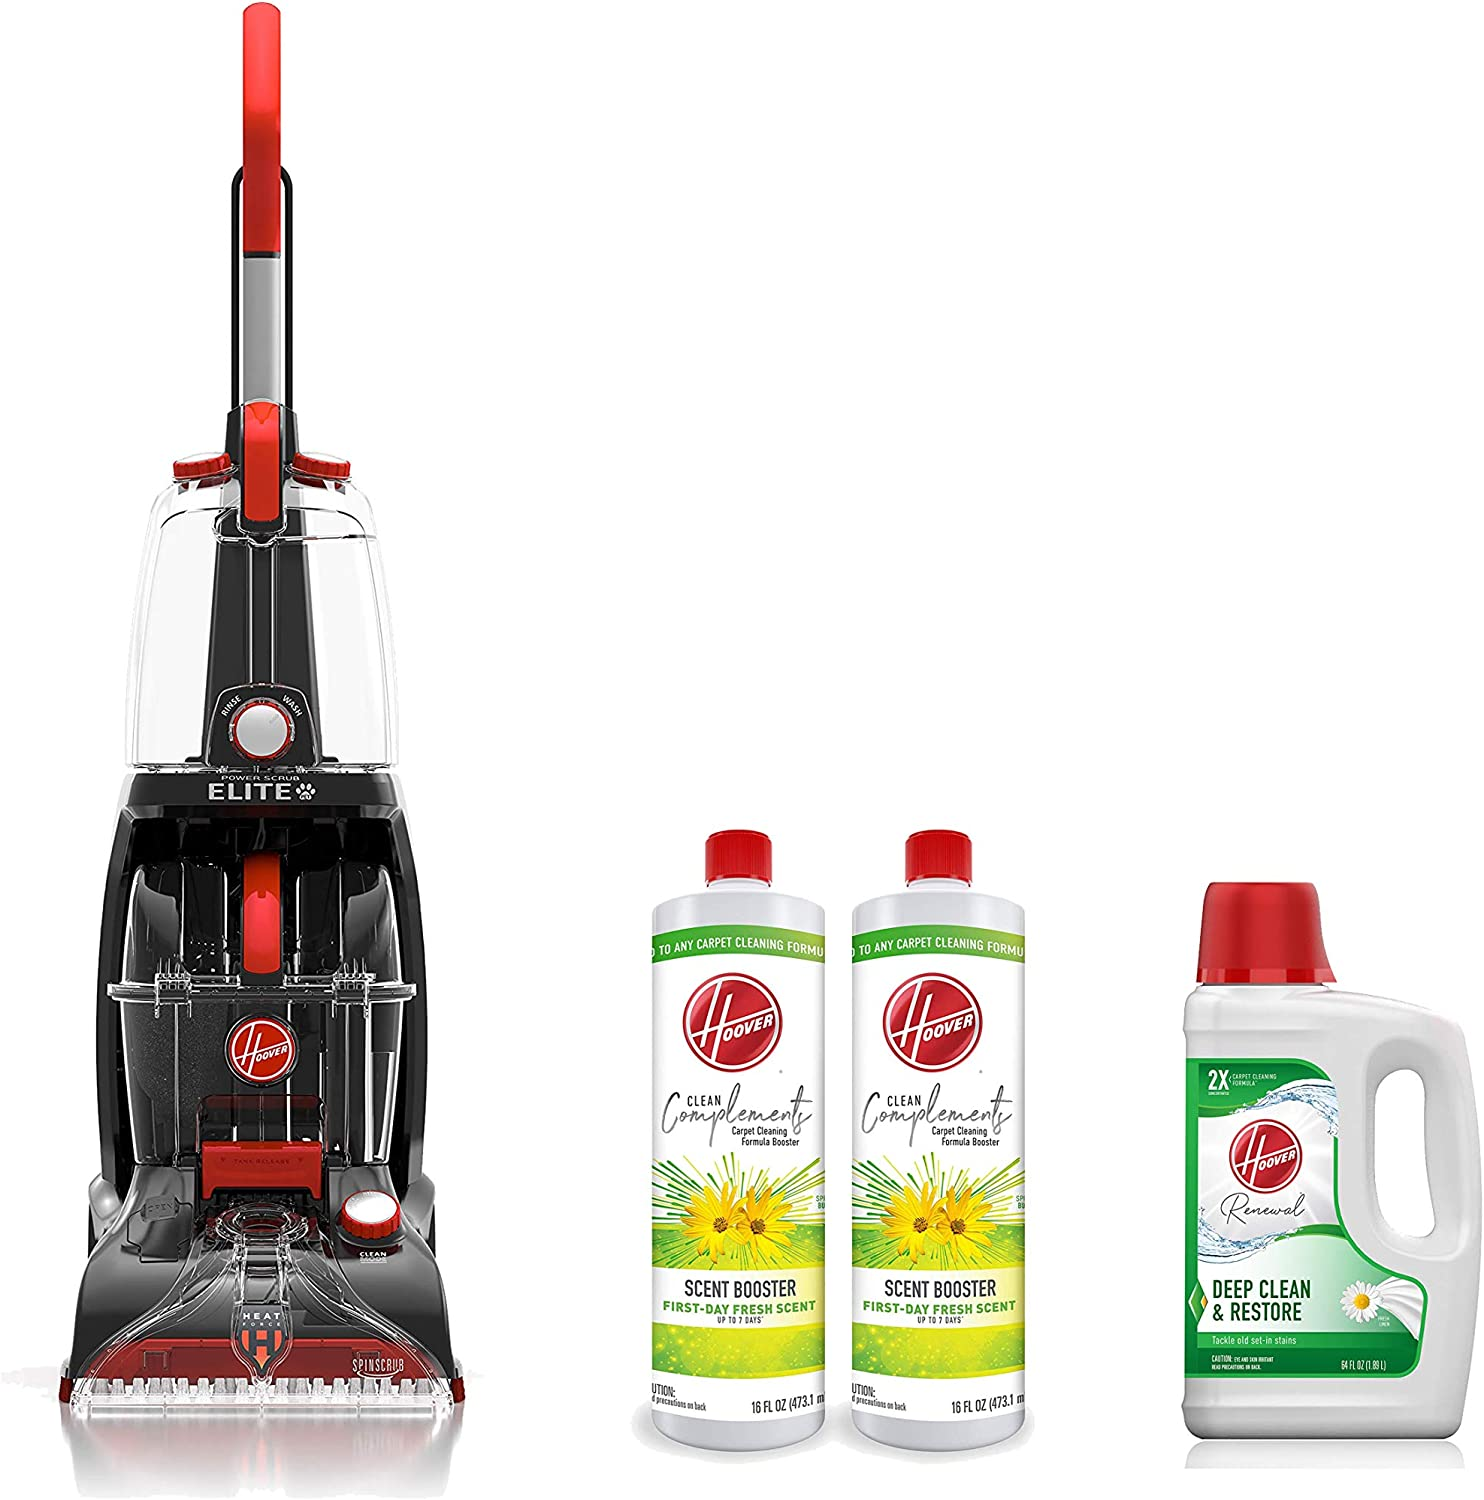 Hoover FH50251PC Power Scrub Elite Pet Upright Carpet Cleaner and Shampooer, Red & Deep Cleaning Carpet Shampoo, White, 64 Fl Oz & Scent Booster for Carpet Cleaner Machines, 16 oz, Pack of 2, White